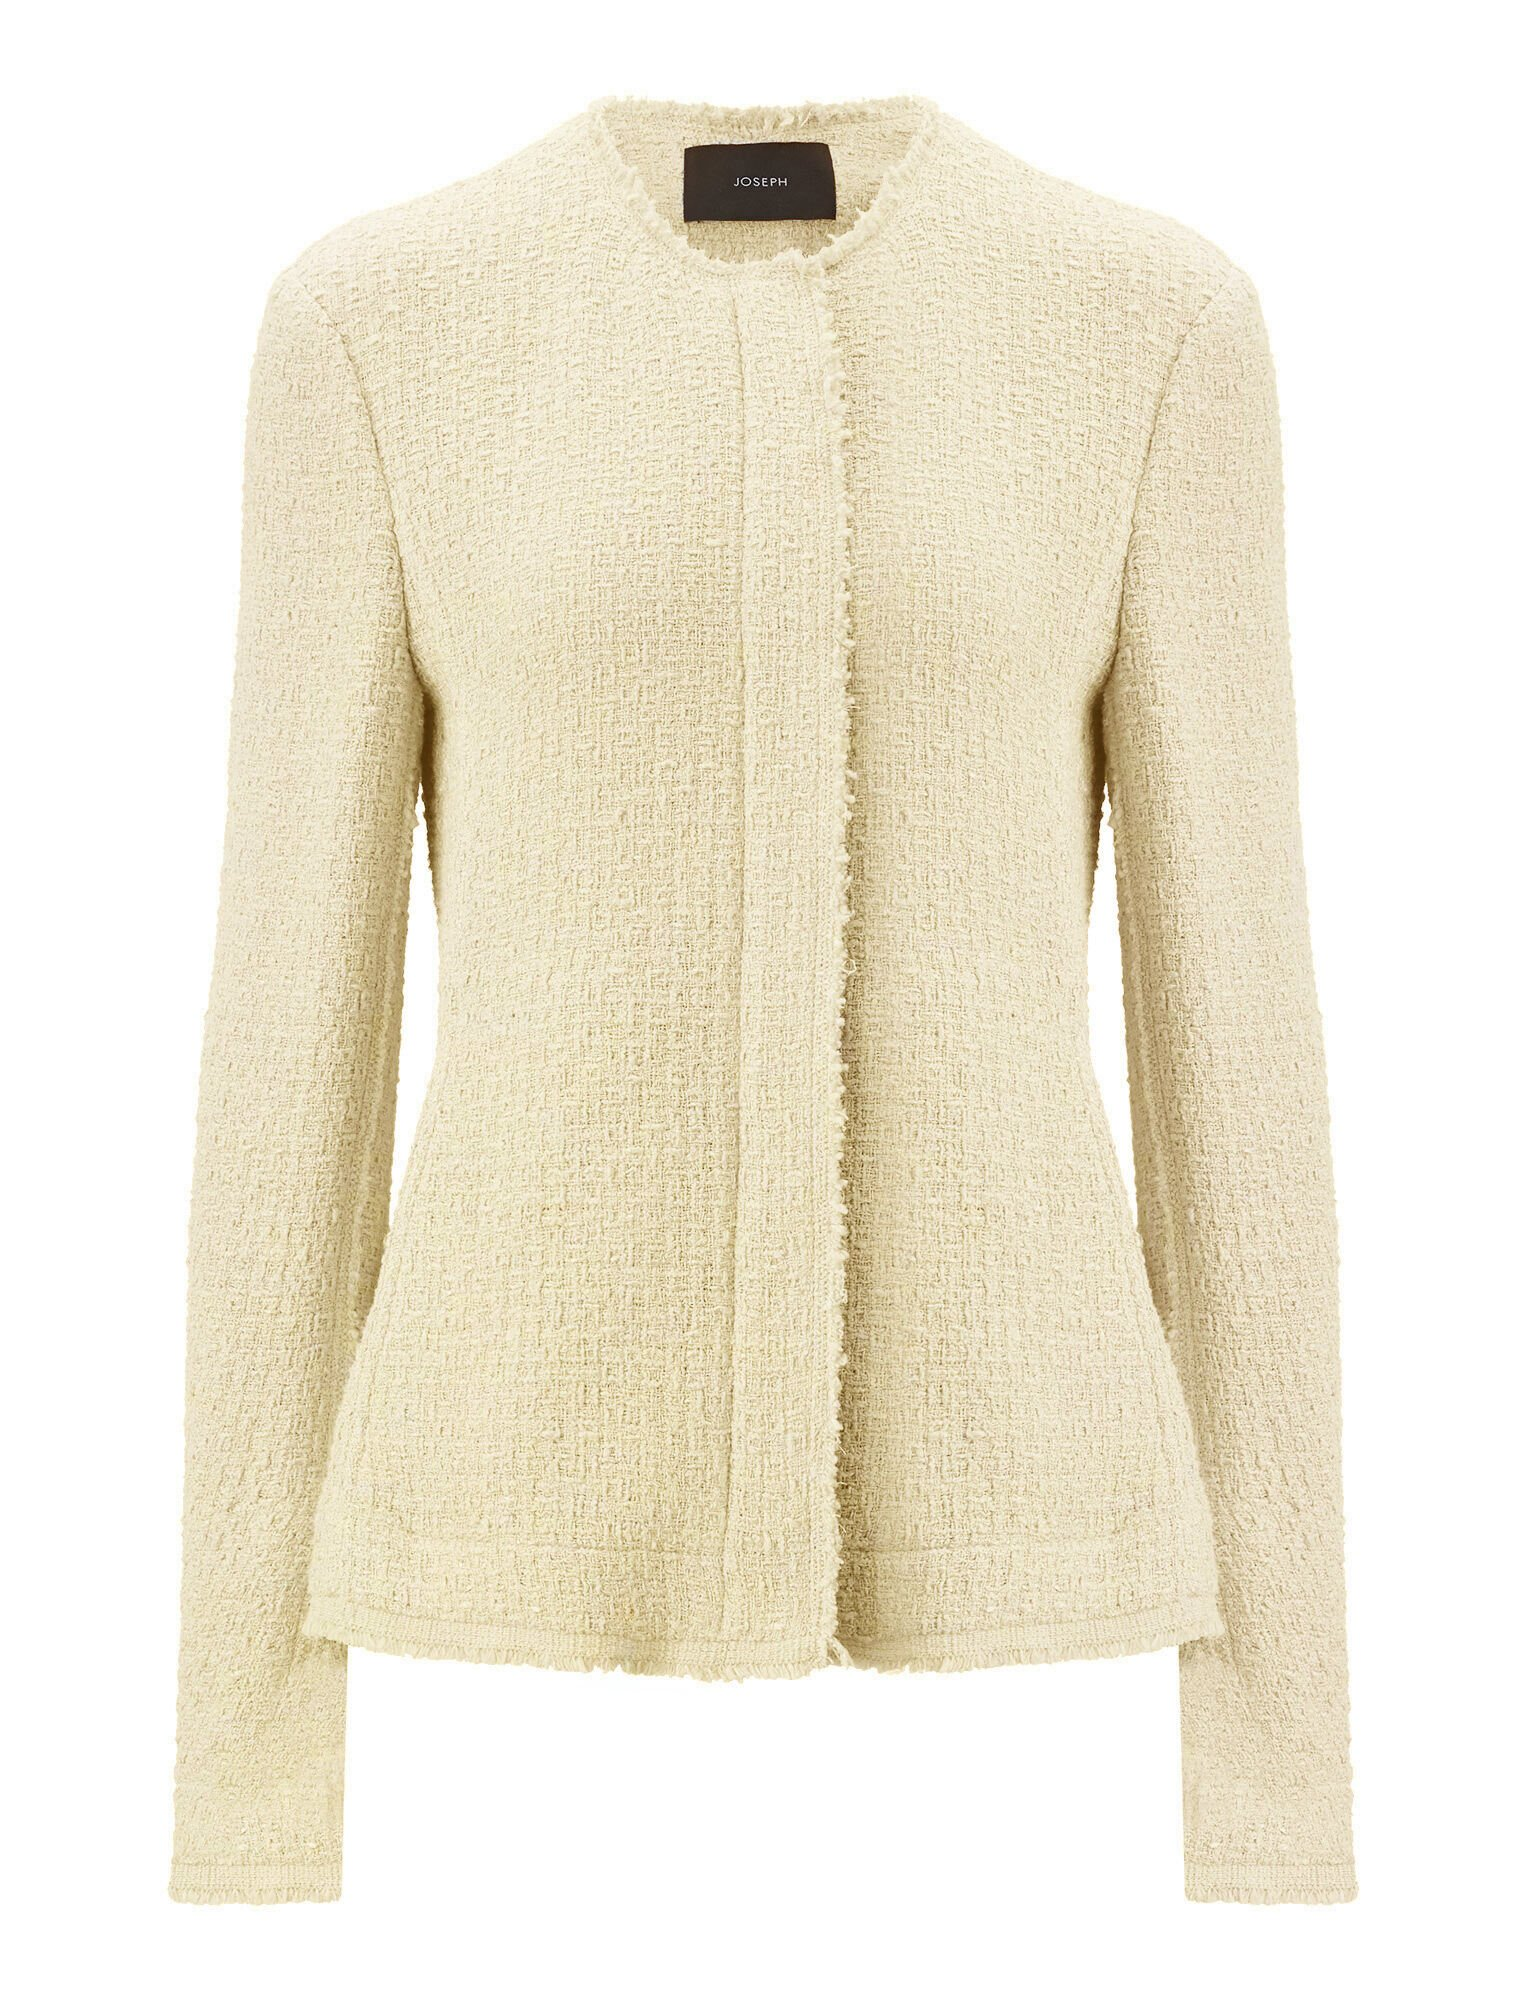 Joseph, Jerra Tweed Jacket, in CREAM